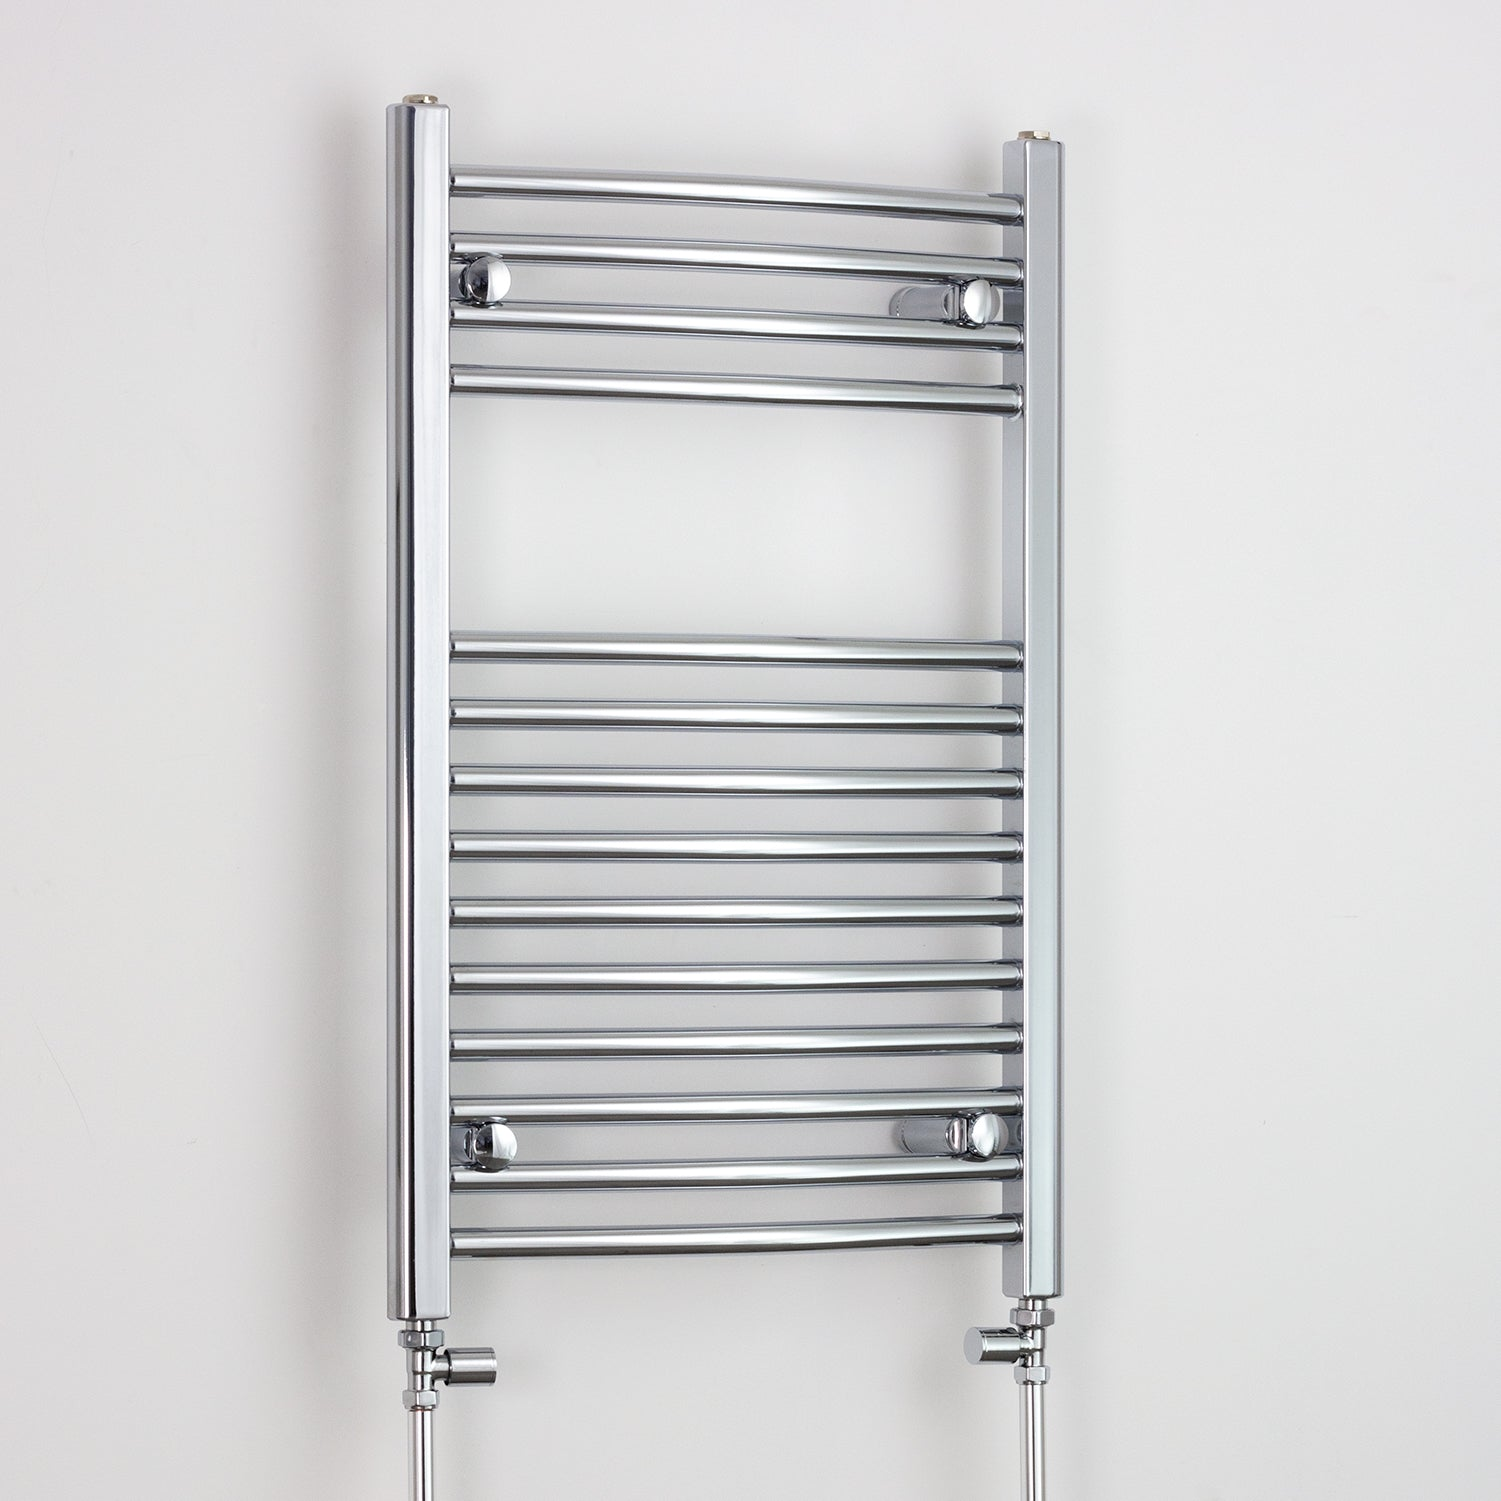 500mm Wide 800mm High Flat Chrome Heated Towel Rail Radiator HTR